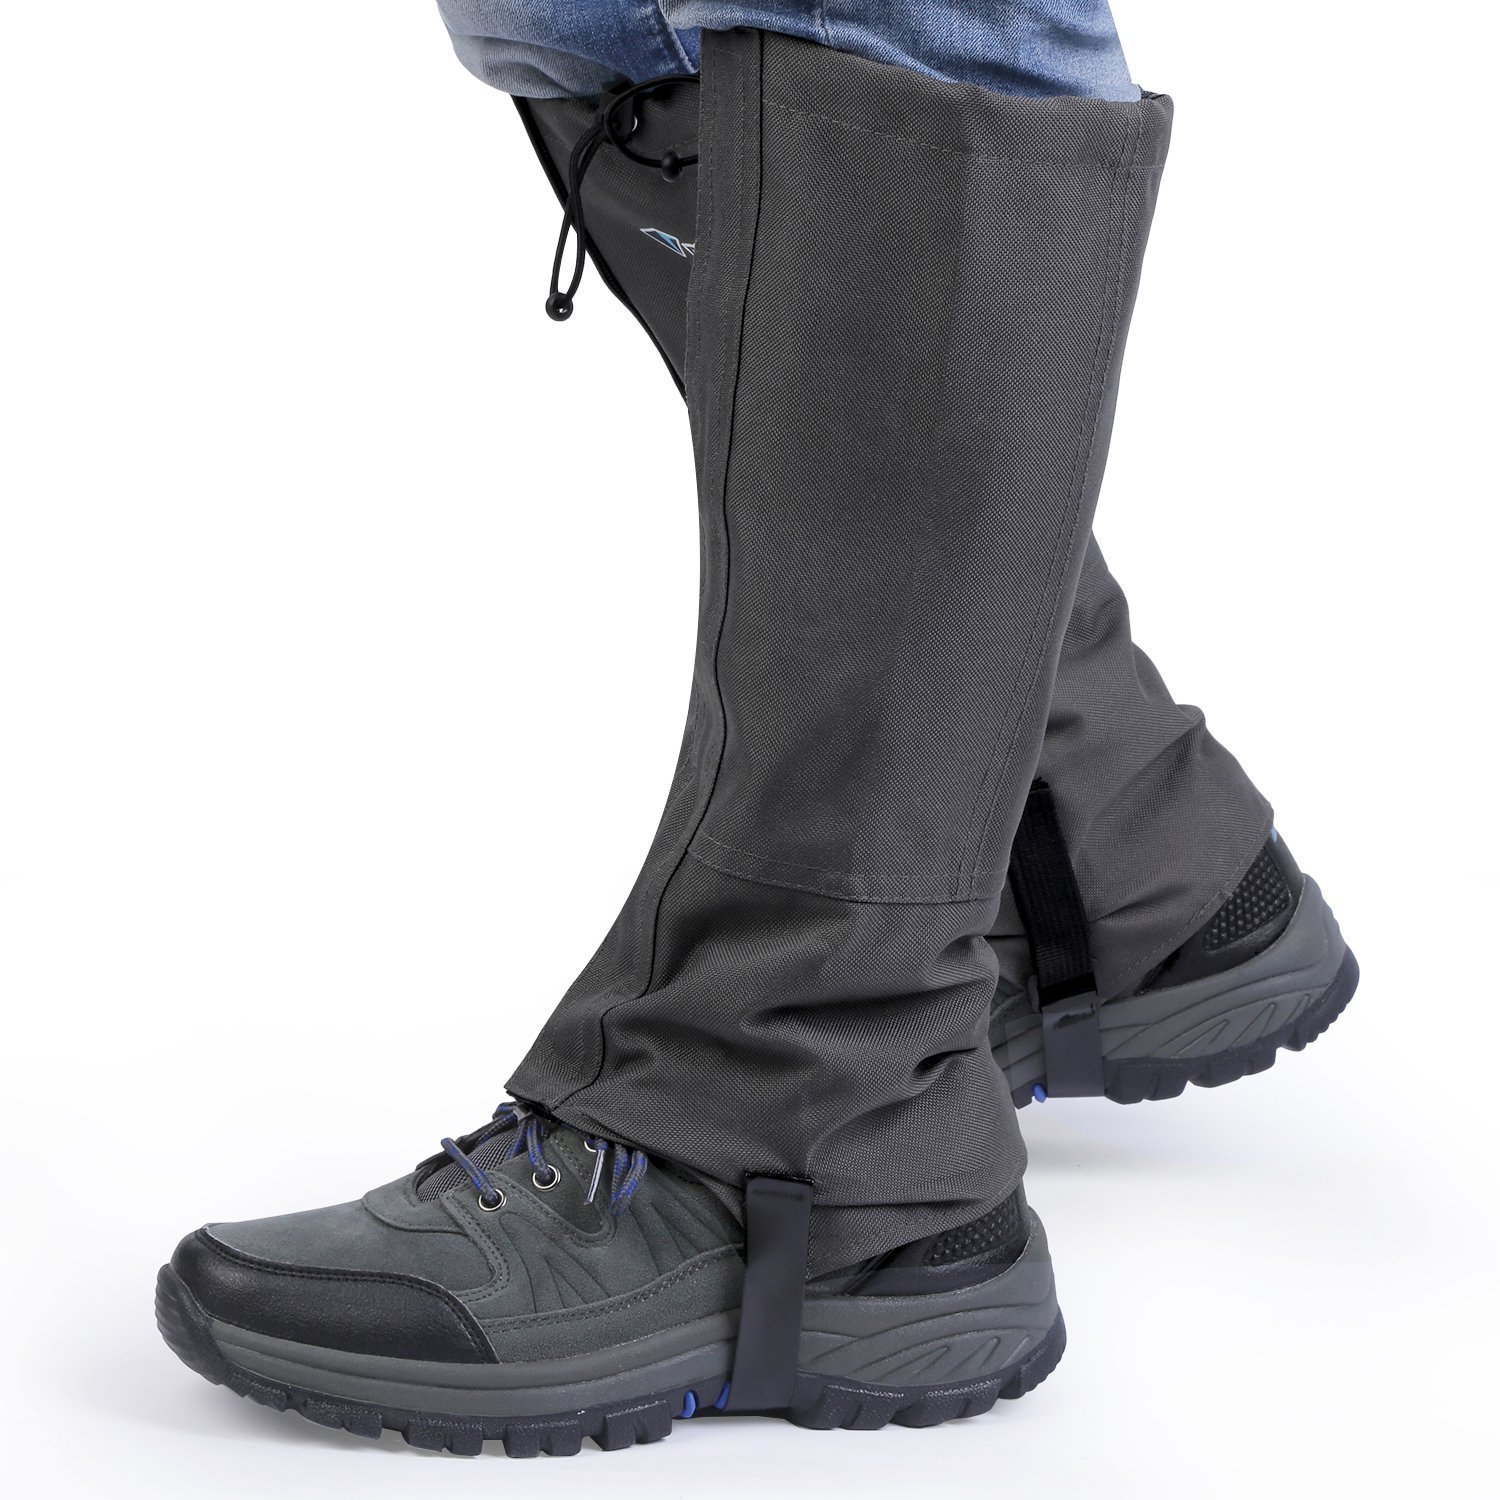 OUTAD Waterproof Outdoor Hiking Walking Climbing Hunting Snow Legging Gaiters 1 Pair